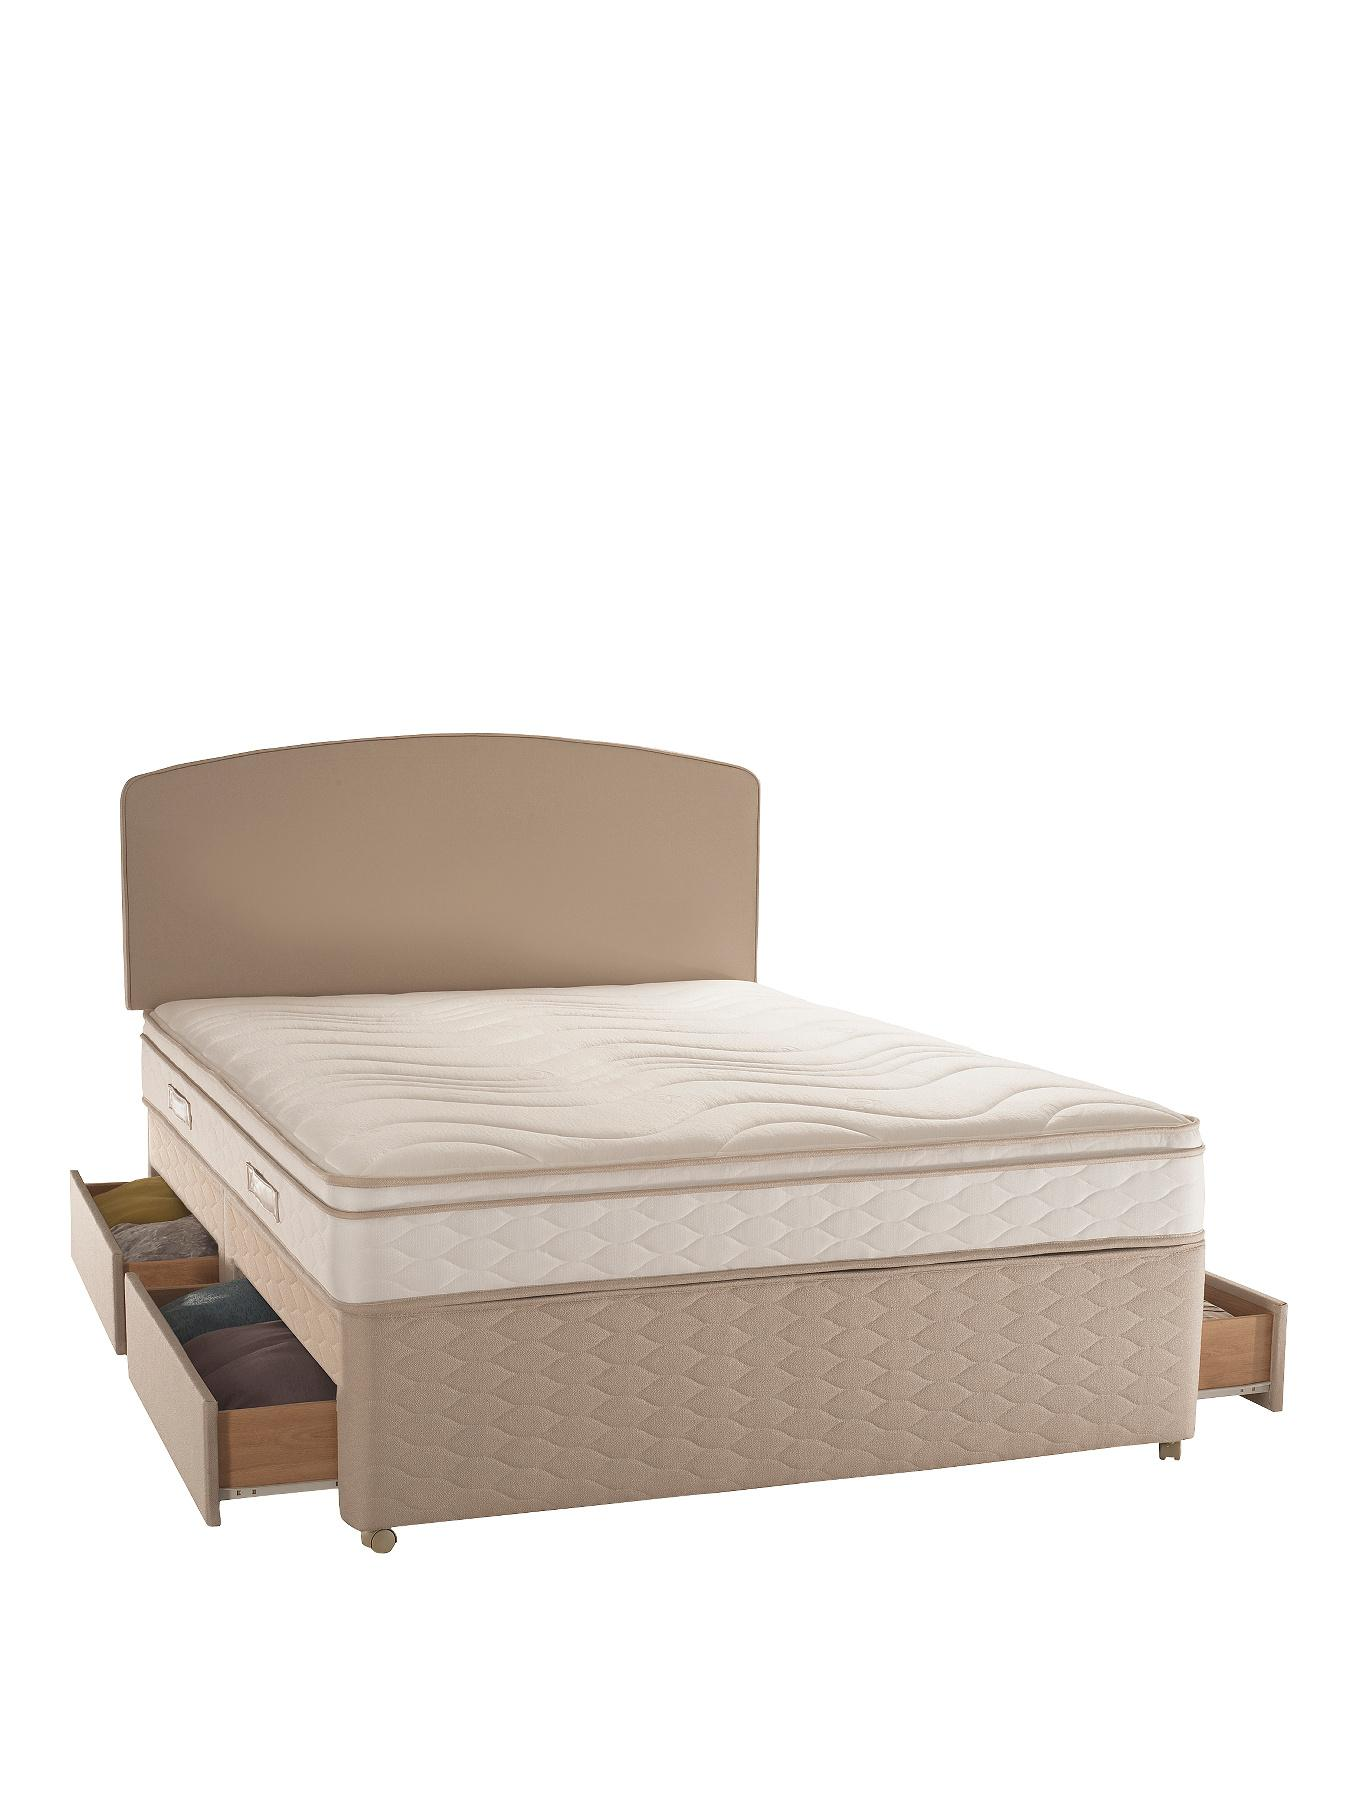 Littlewoods catalogue beds from littlewoods at for Divan storage bed mattress